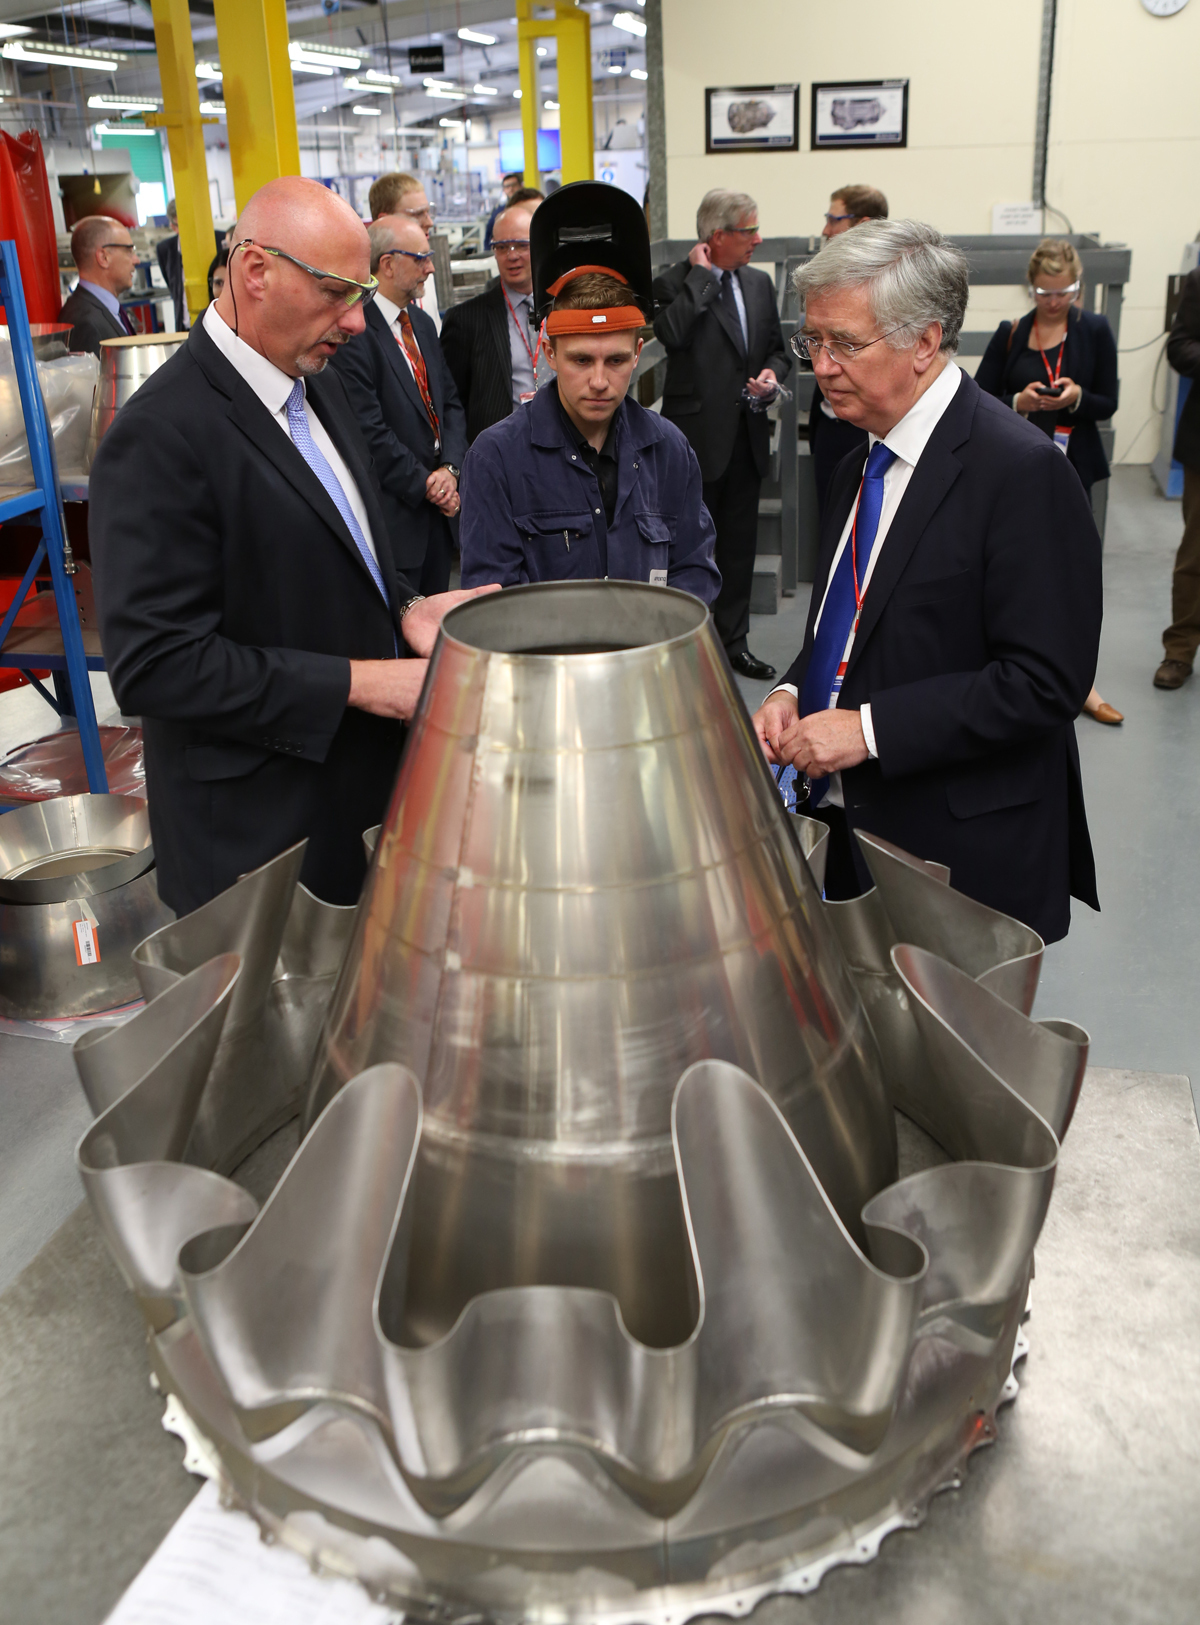 FACTORY EXPANSION: Billy Meijer, Darchem managing director, left, talks to apprentice James Kenny and Energy Minister Michael Fallon about an Aro engine mixer